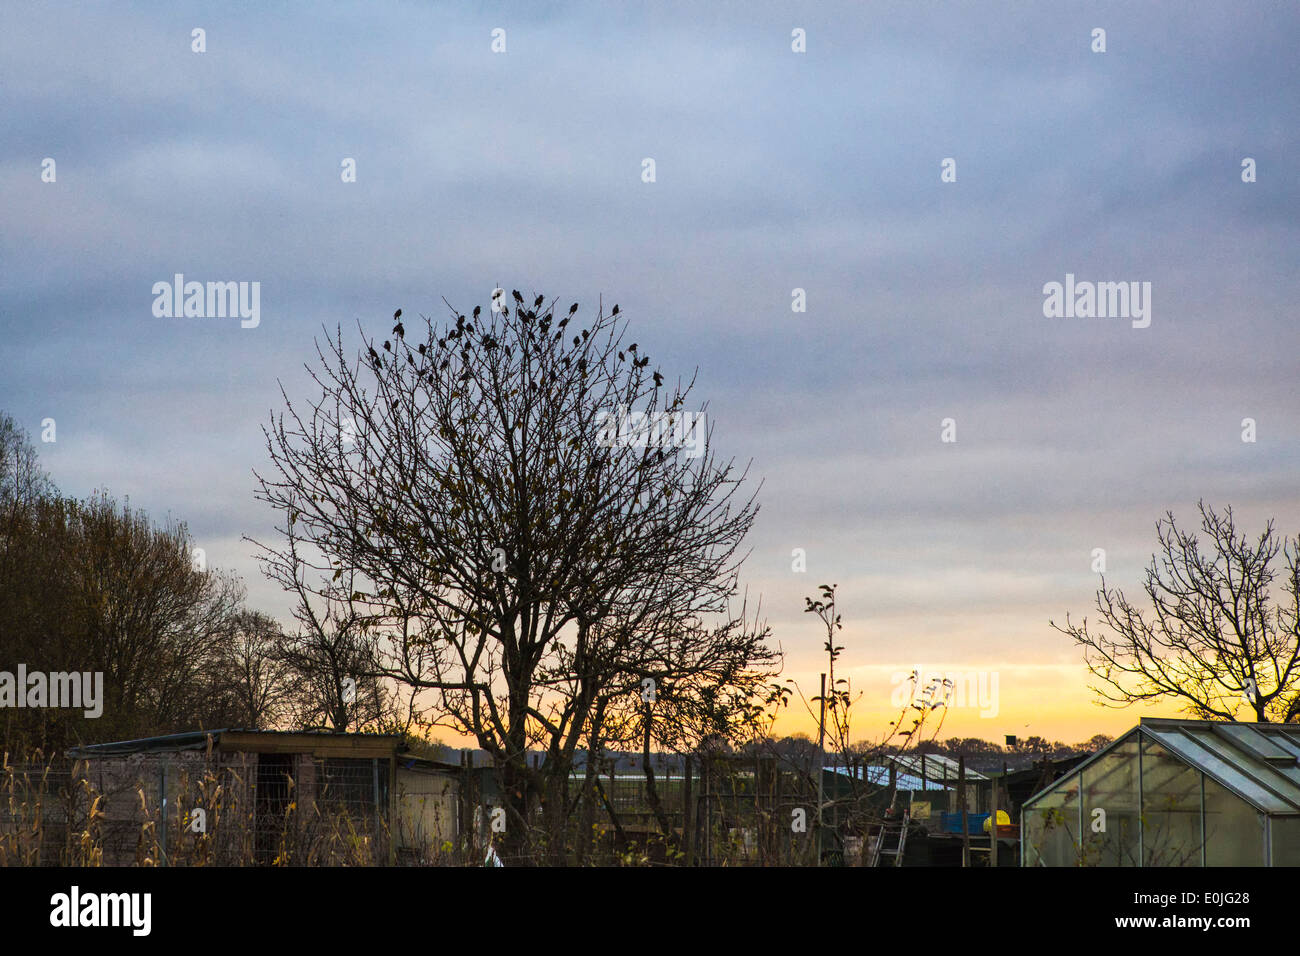 Sunset landscape allotment garden during winter in the Netherlands Stock Photo